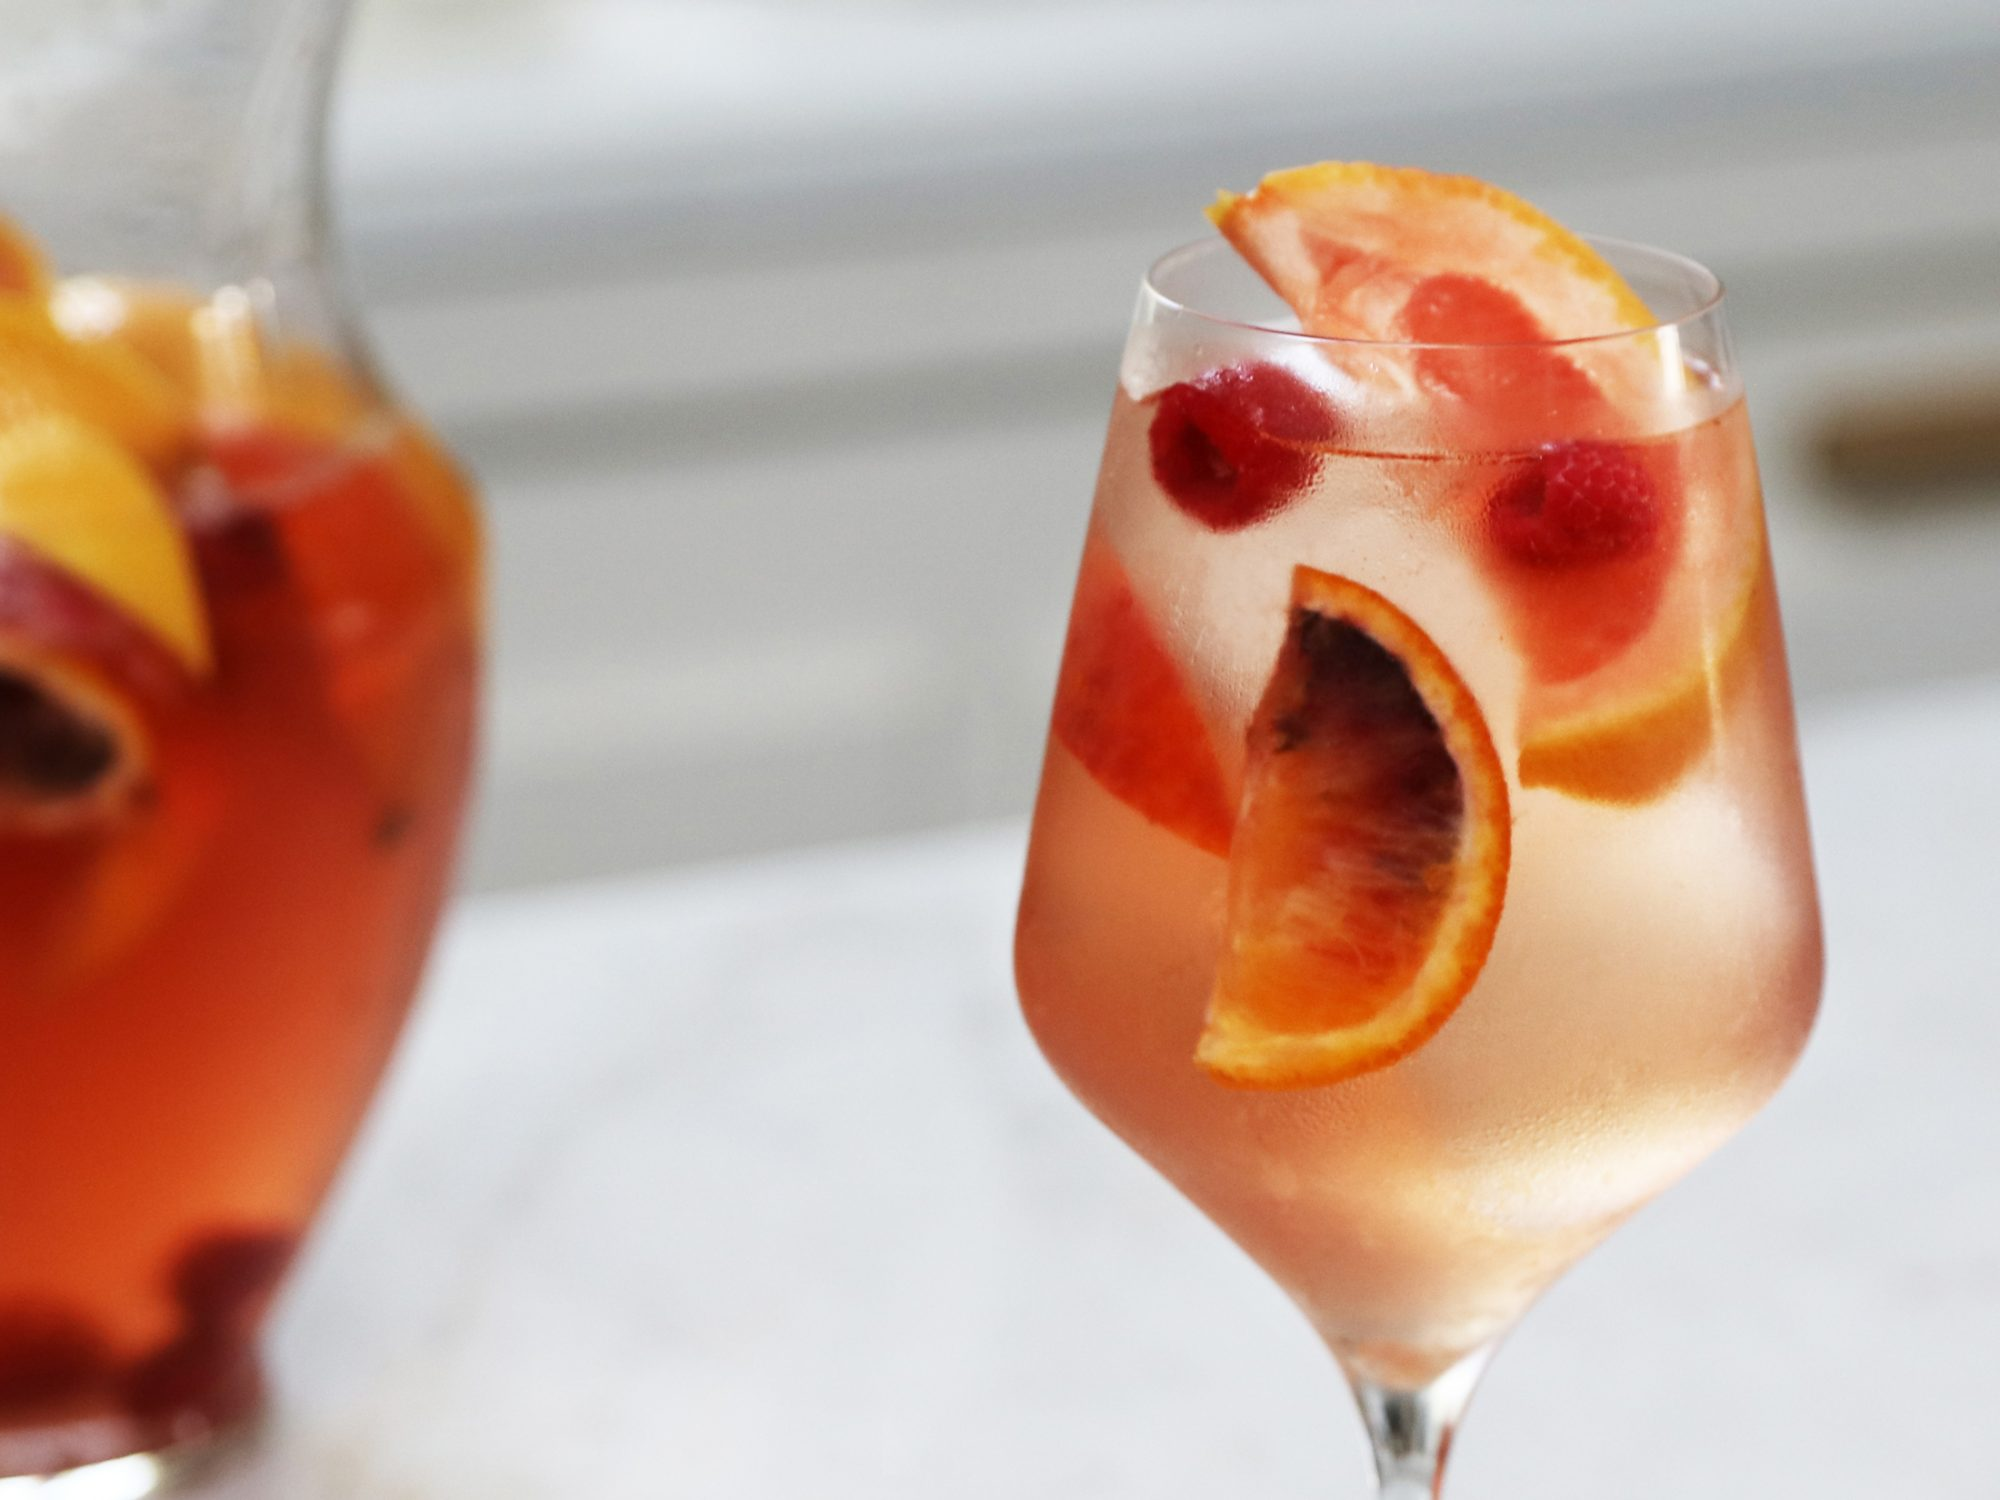 Will You Accept This Rosé Sangria image